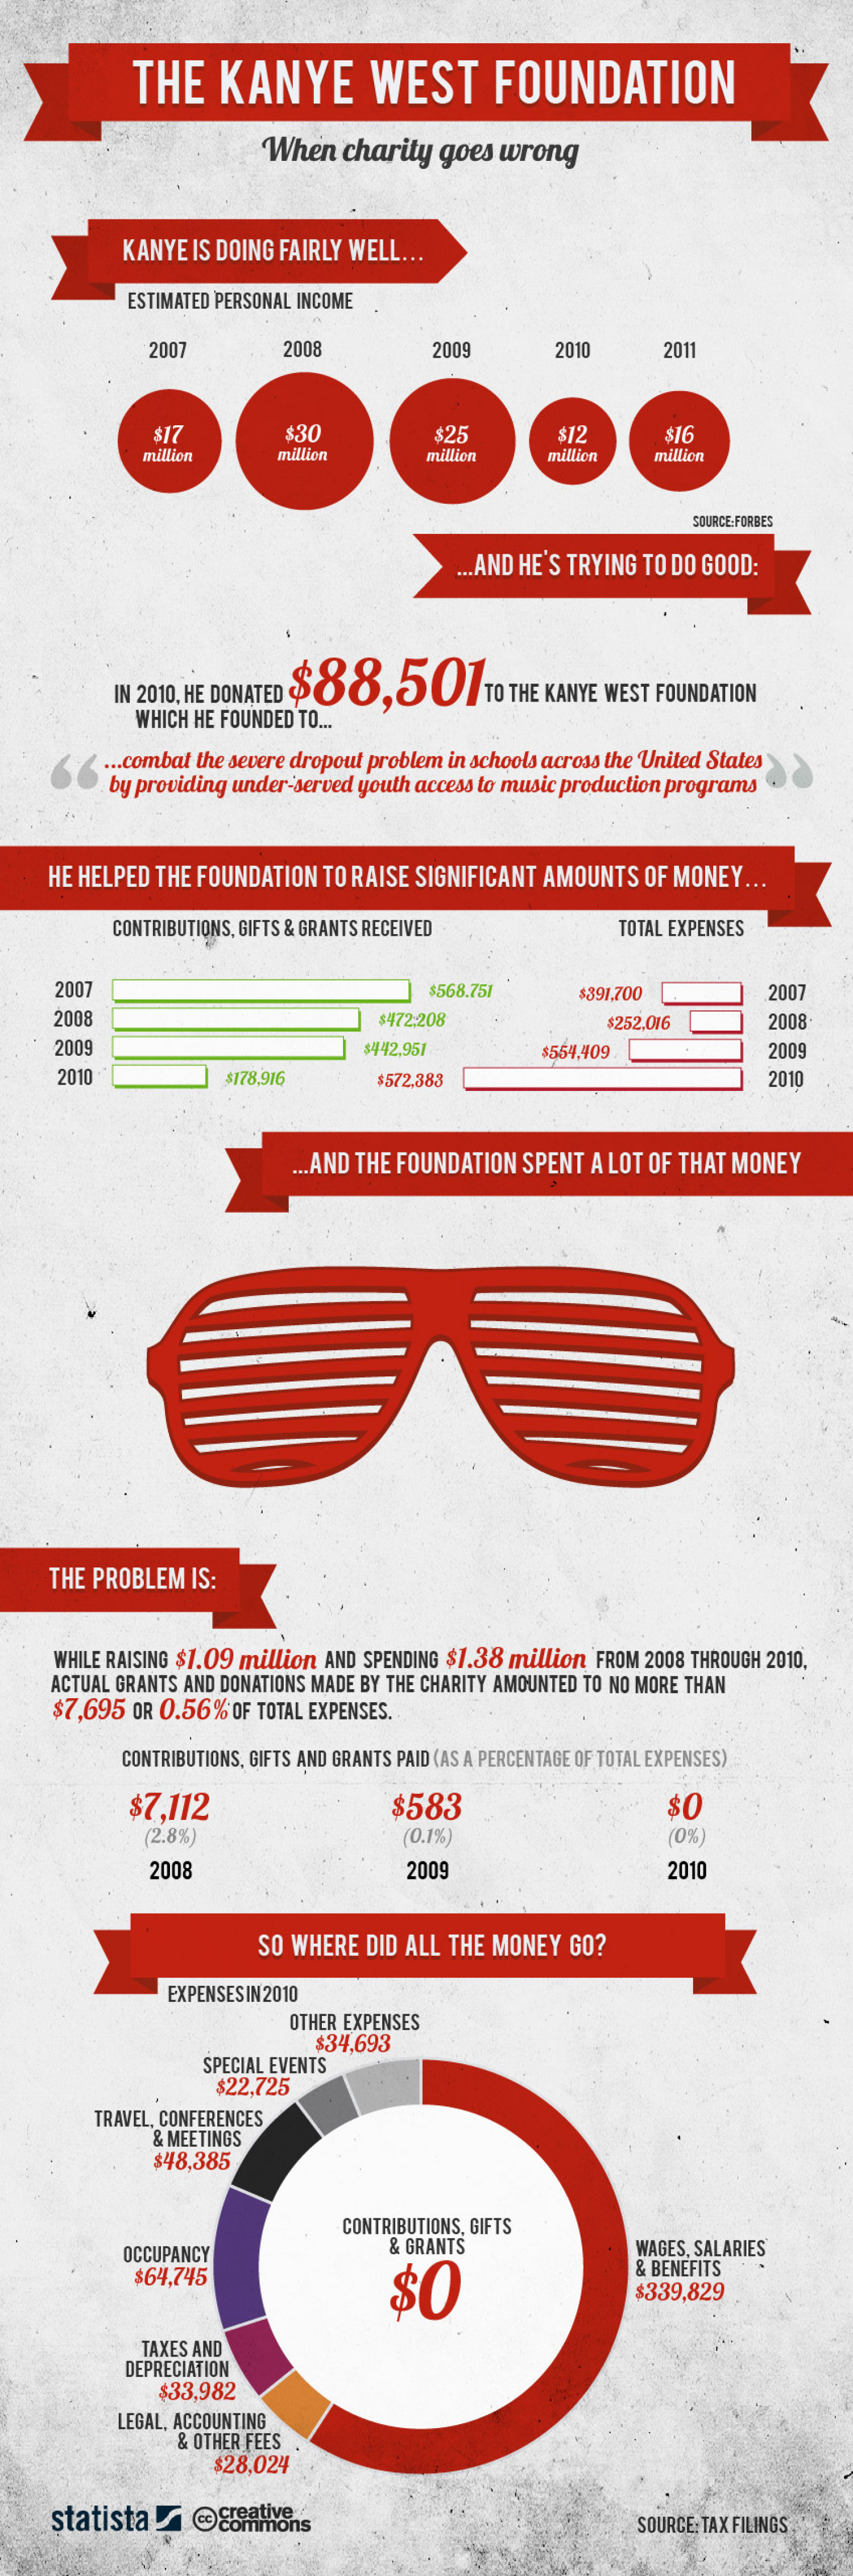 The Kanye West Foundation - when charity goes wrong Infographic